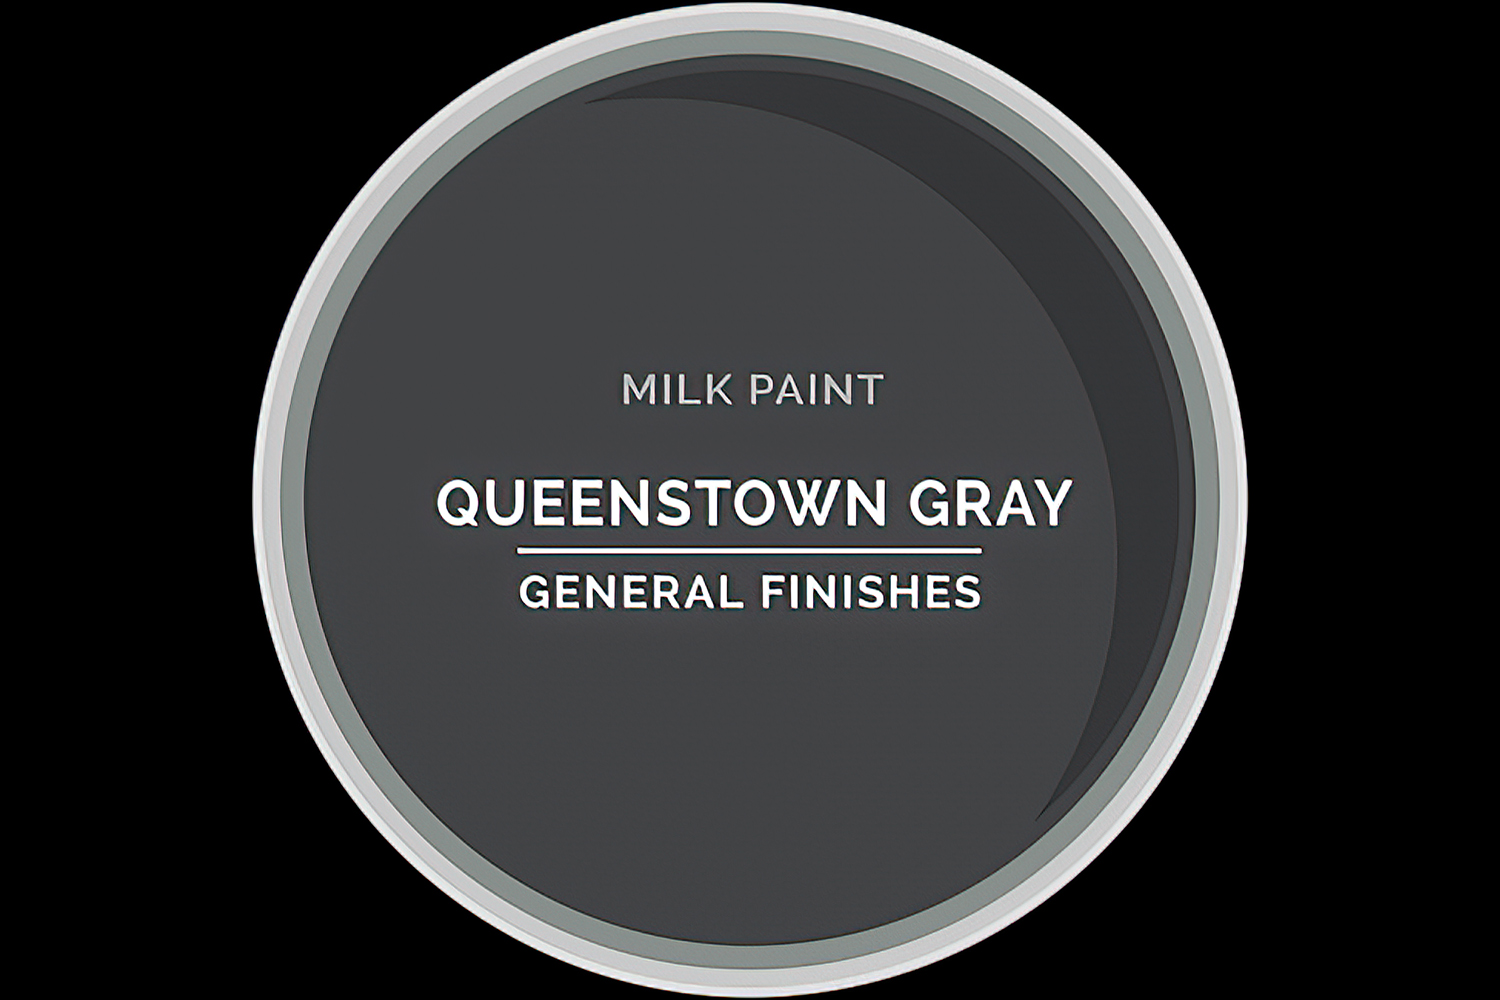 Color Chip Milk Paint QUEENSTOWN GRAY General Finishes Copy